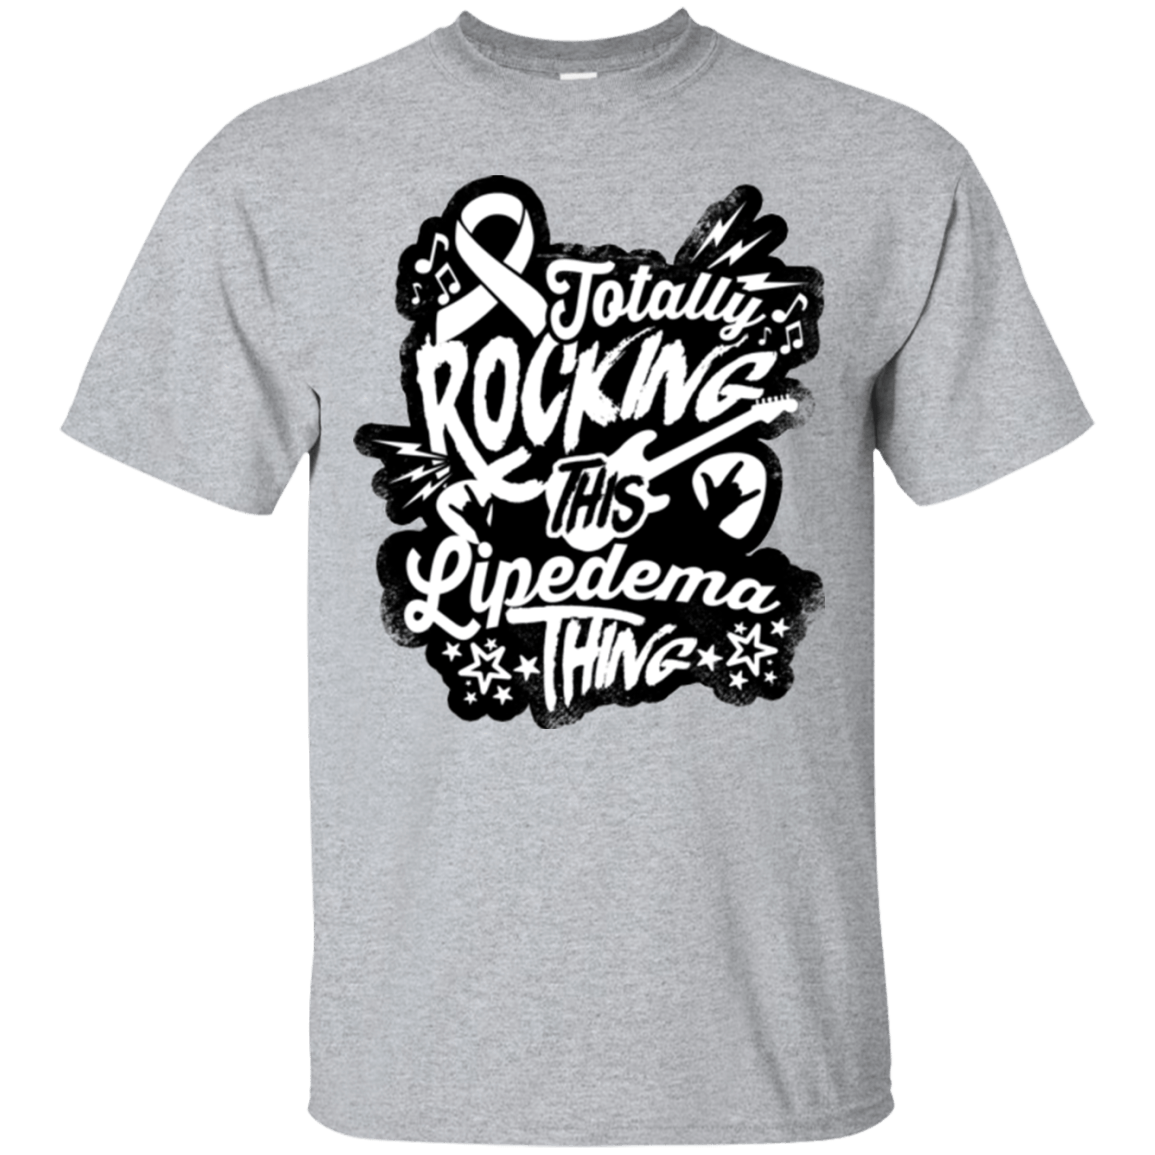 T-Shirts - Rocking Lipedema Unisex Shirt